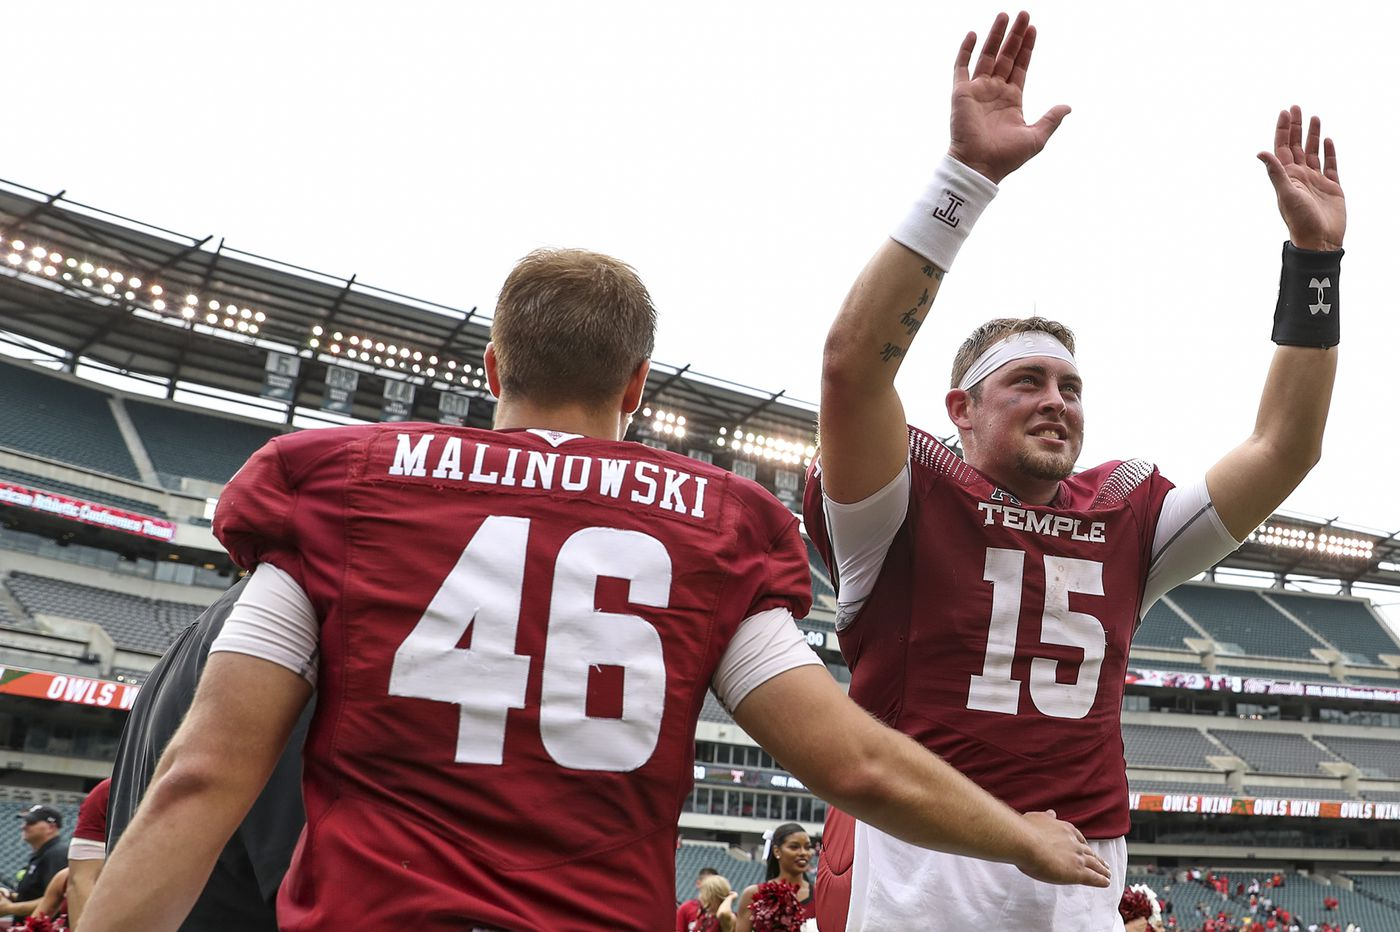 Temple-Buffalo prediction: This might not be as easy as it looks